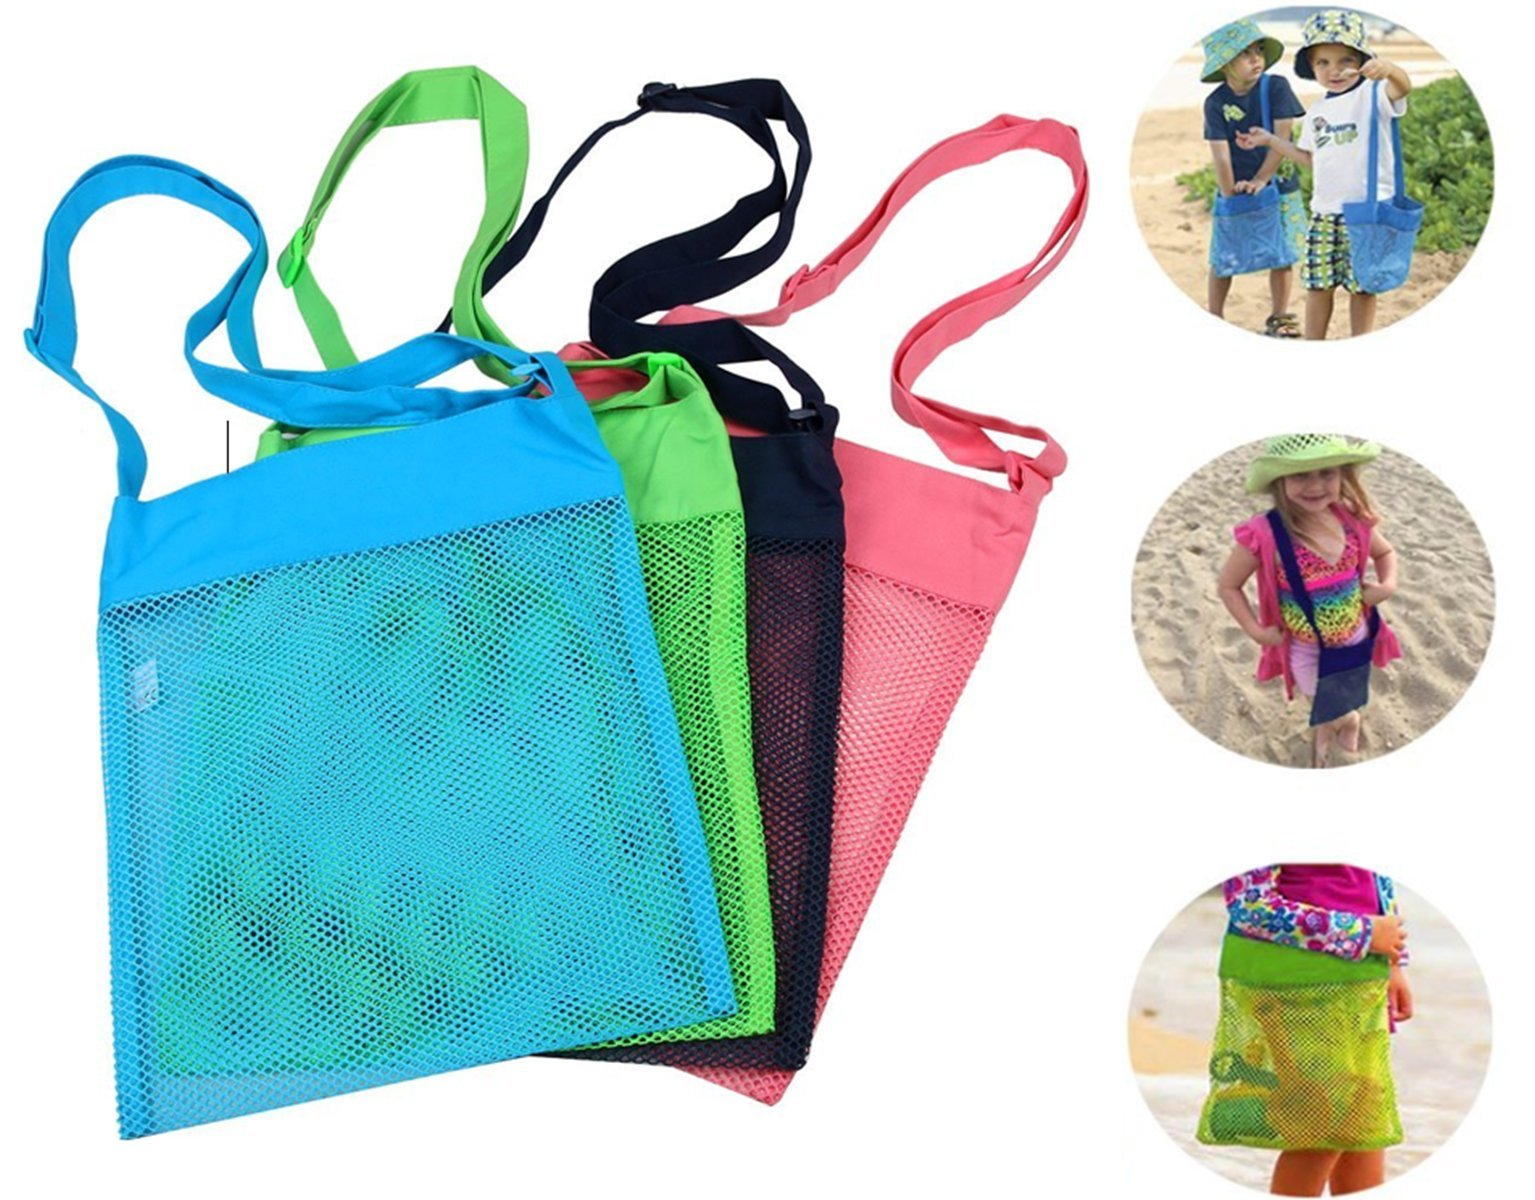 TECH-P Creative Life Sand Away Mesh Beach Bags 11.4 x 13.7 Inch Breathable Sea Shell Bags with Adjustable Carrying Straps-4 Pack (Large)